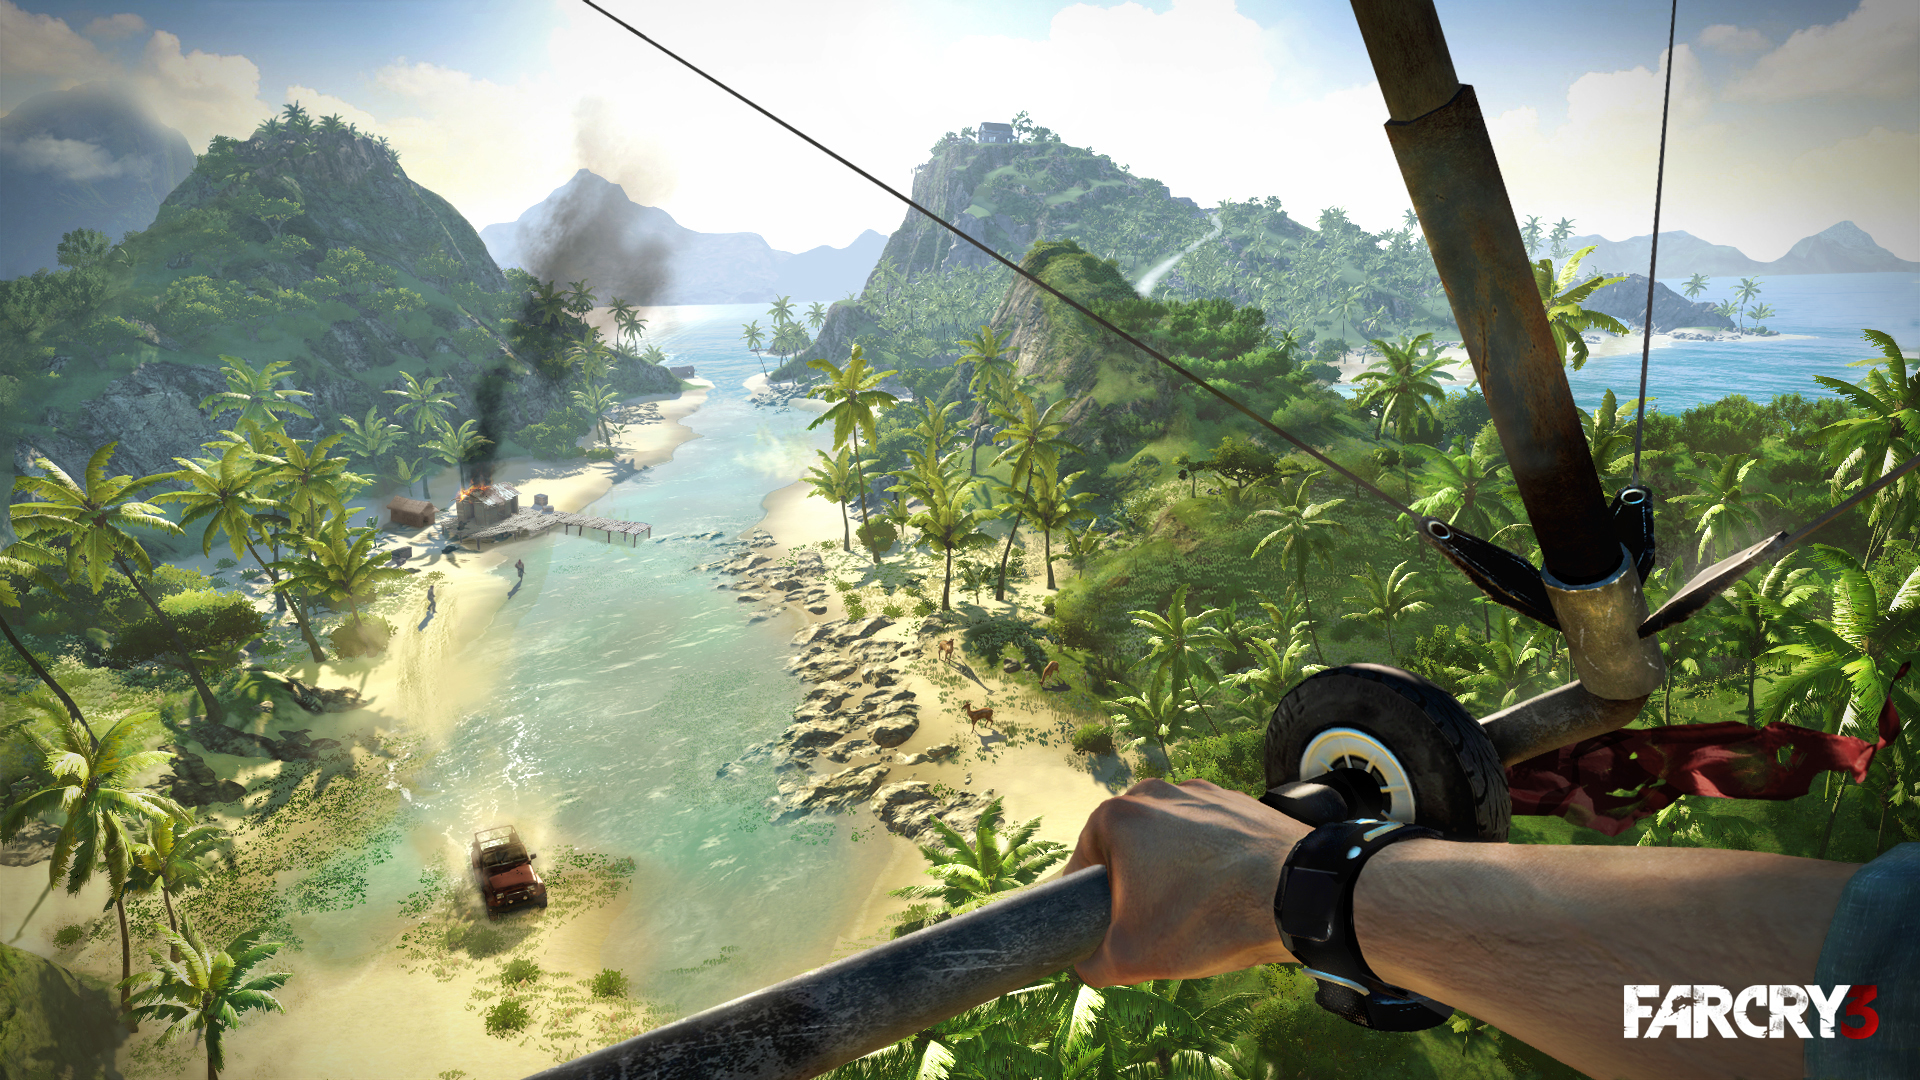 Download Far Cry 3 Wallpaper 43188 1920x1080 Px High Definition